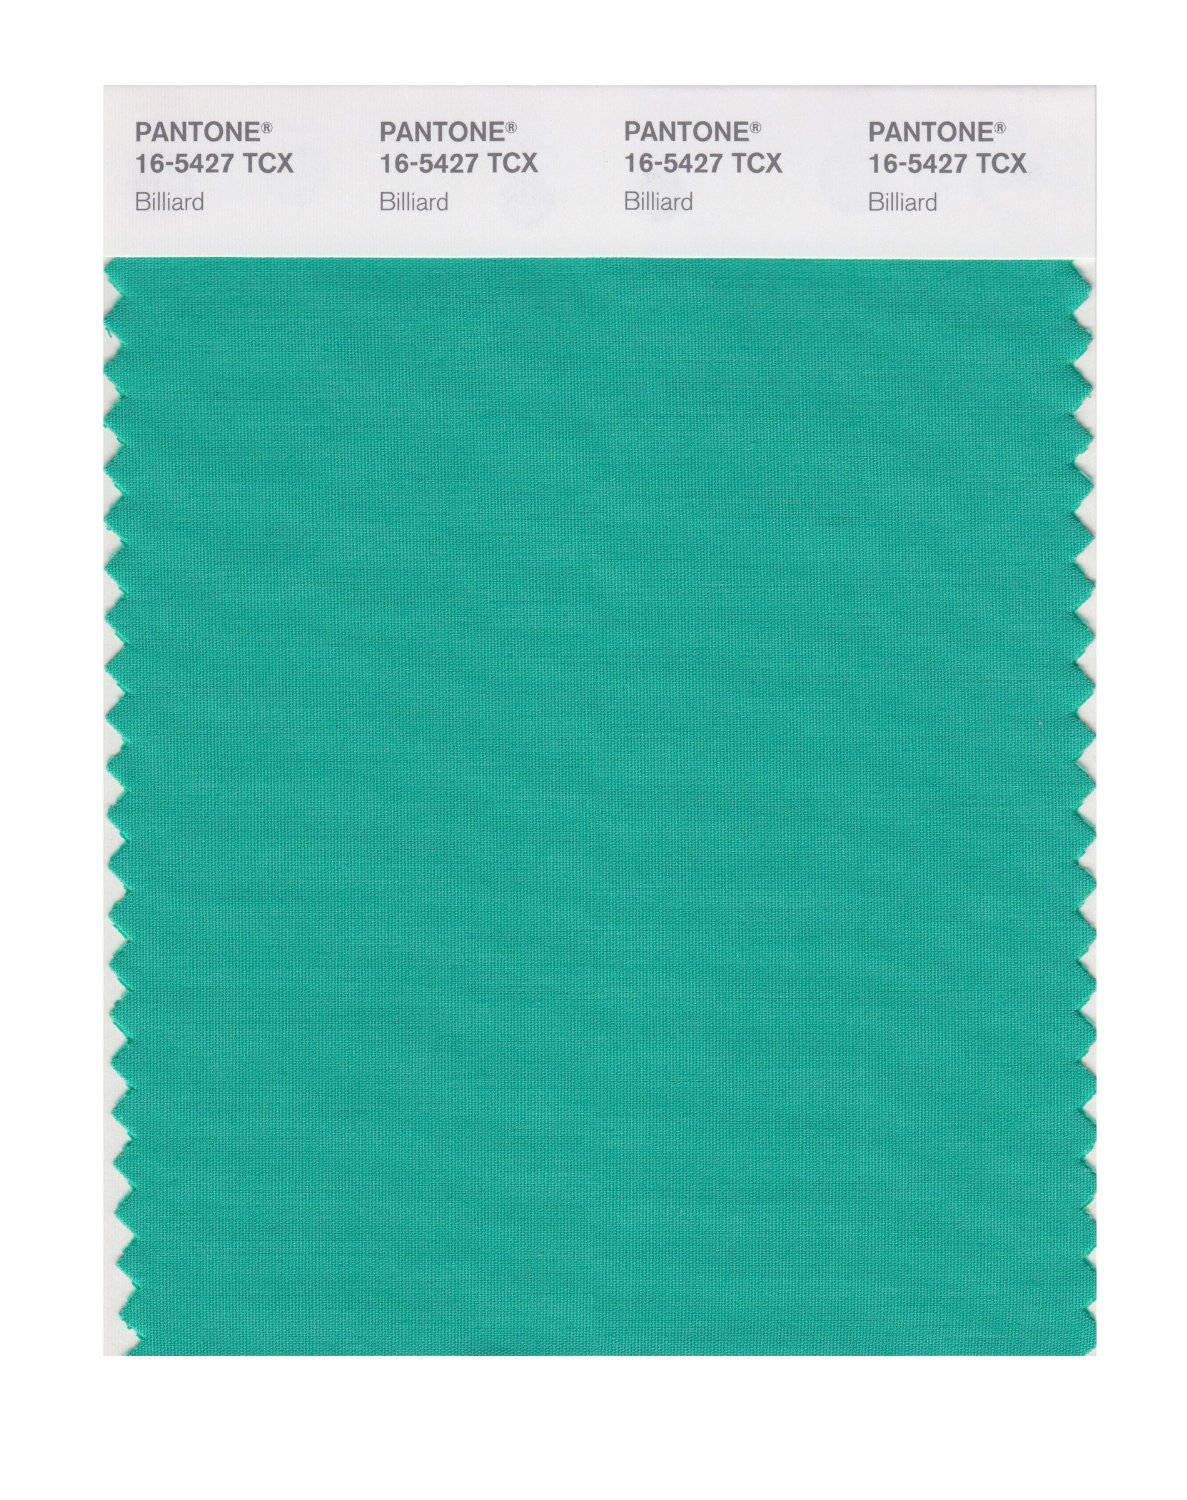 Pantone Smart Swatch 16-5427 Billiard